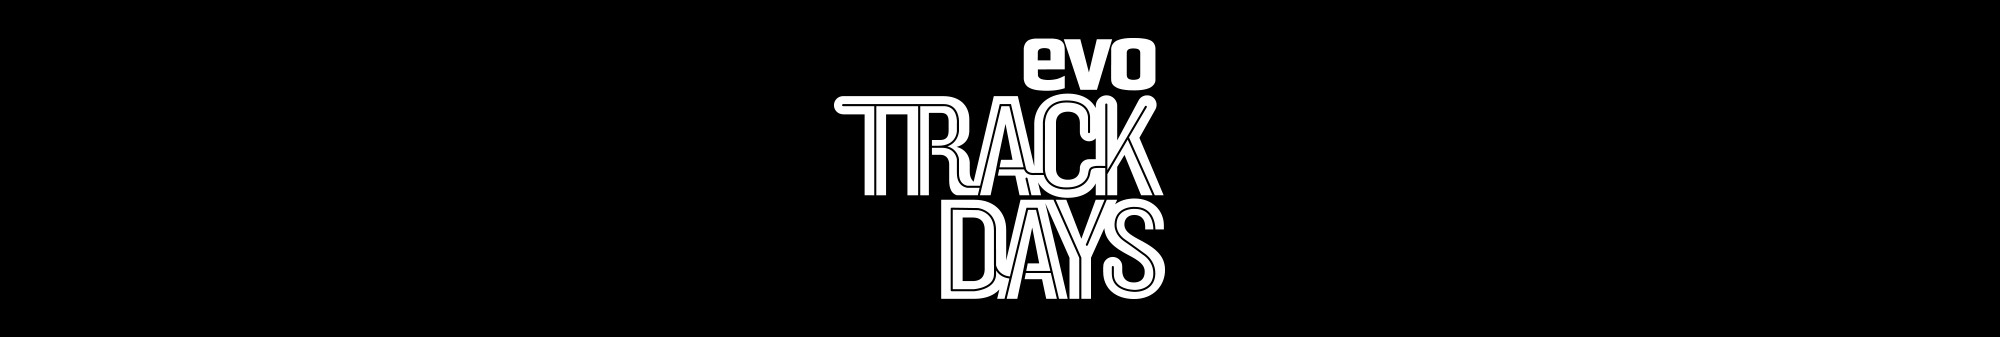 evo track days logo centre